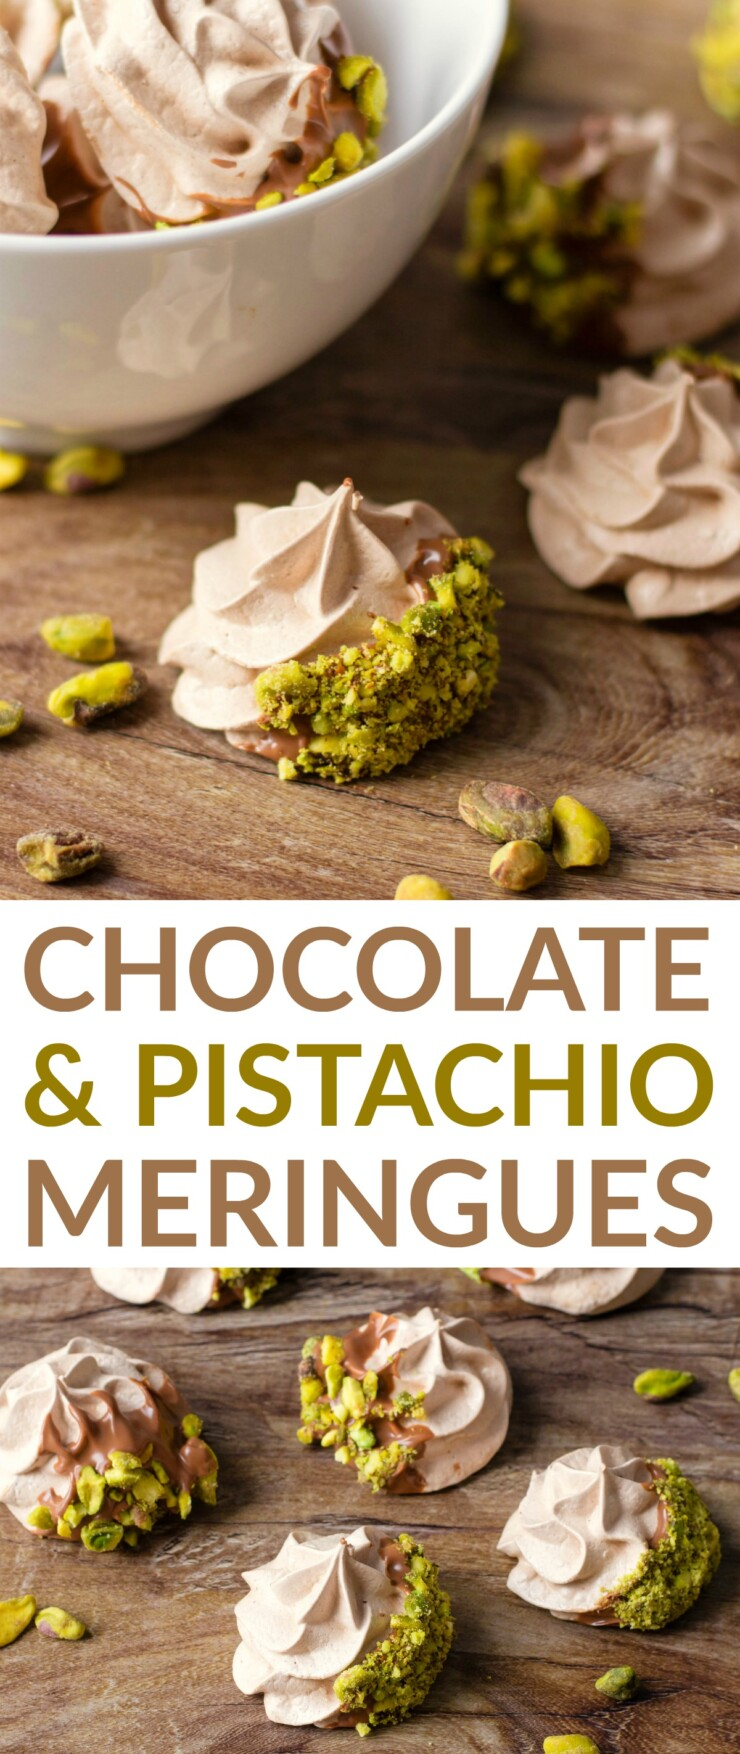 If you are looking for a real show-stopper dessert then these Chocolate & Pistachio Meringue Cookies are just what you are looking for. These melt in your mouth meringues are dipped in chocolate and sprinkled with pistachio bits.